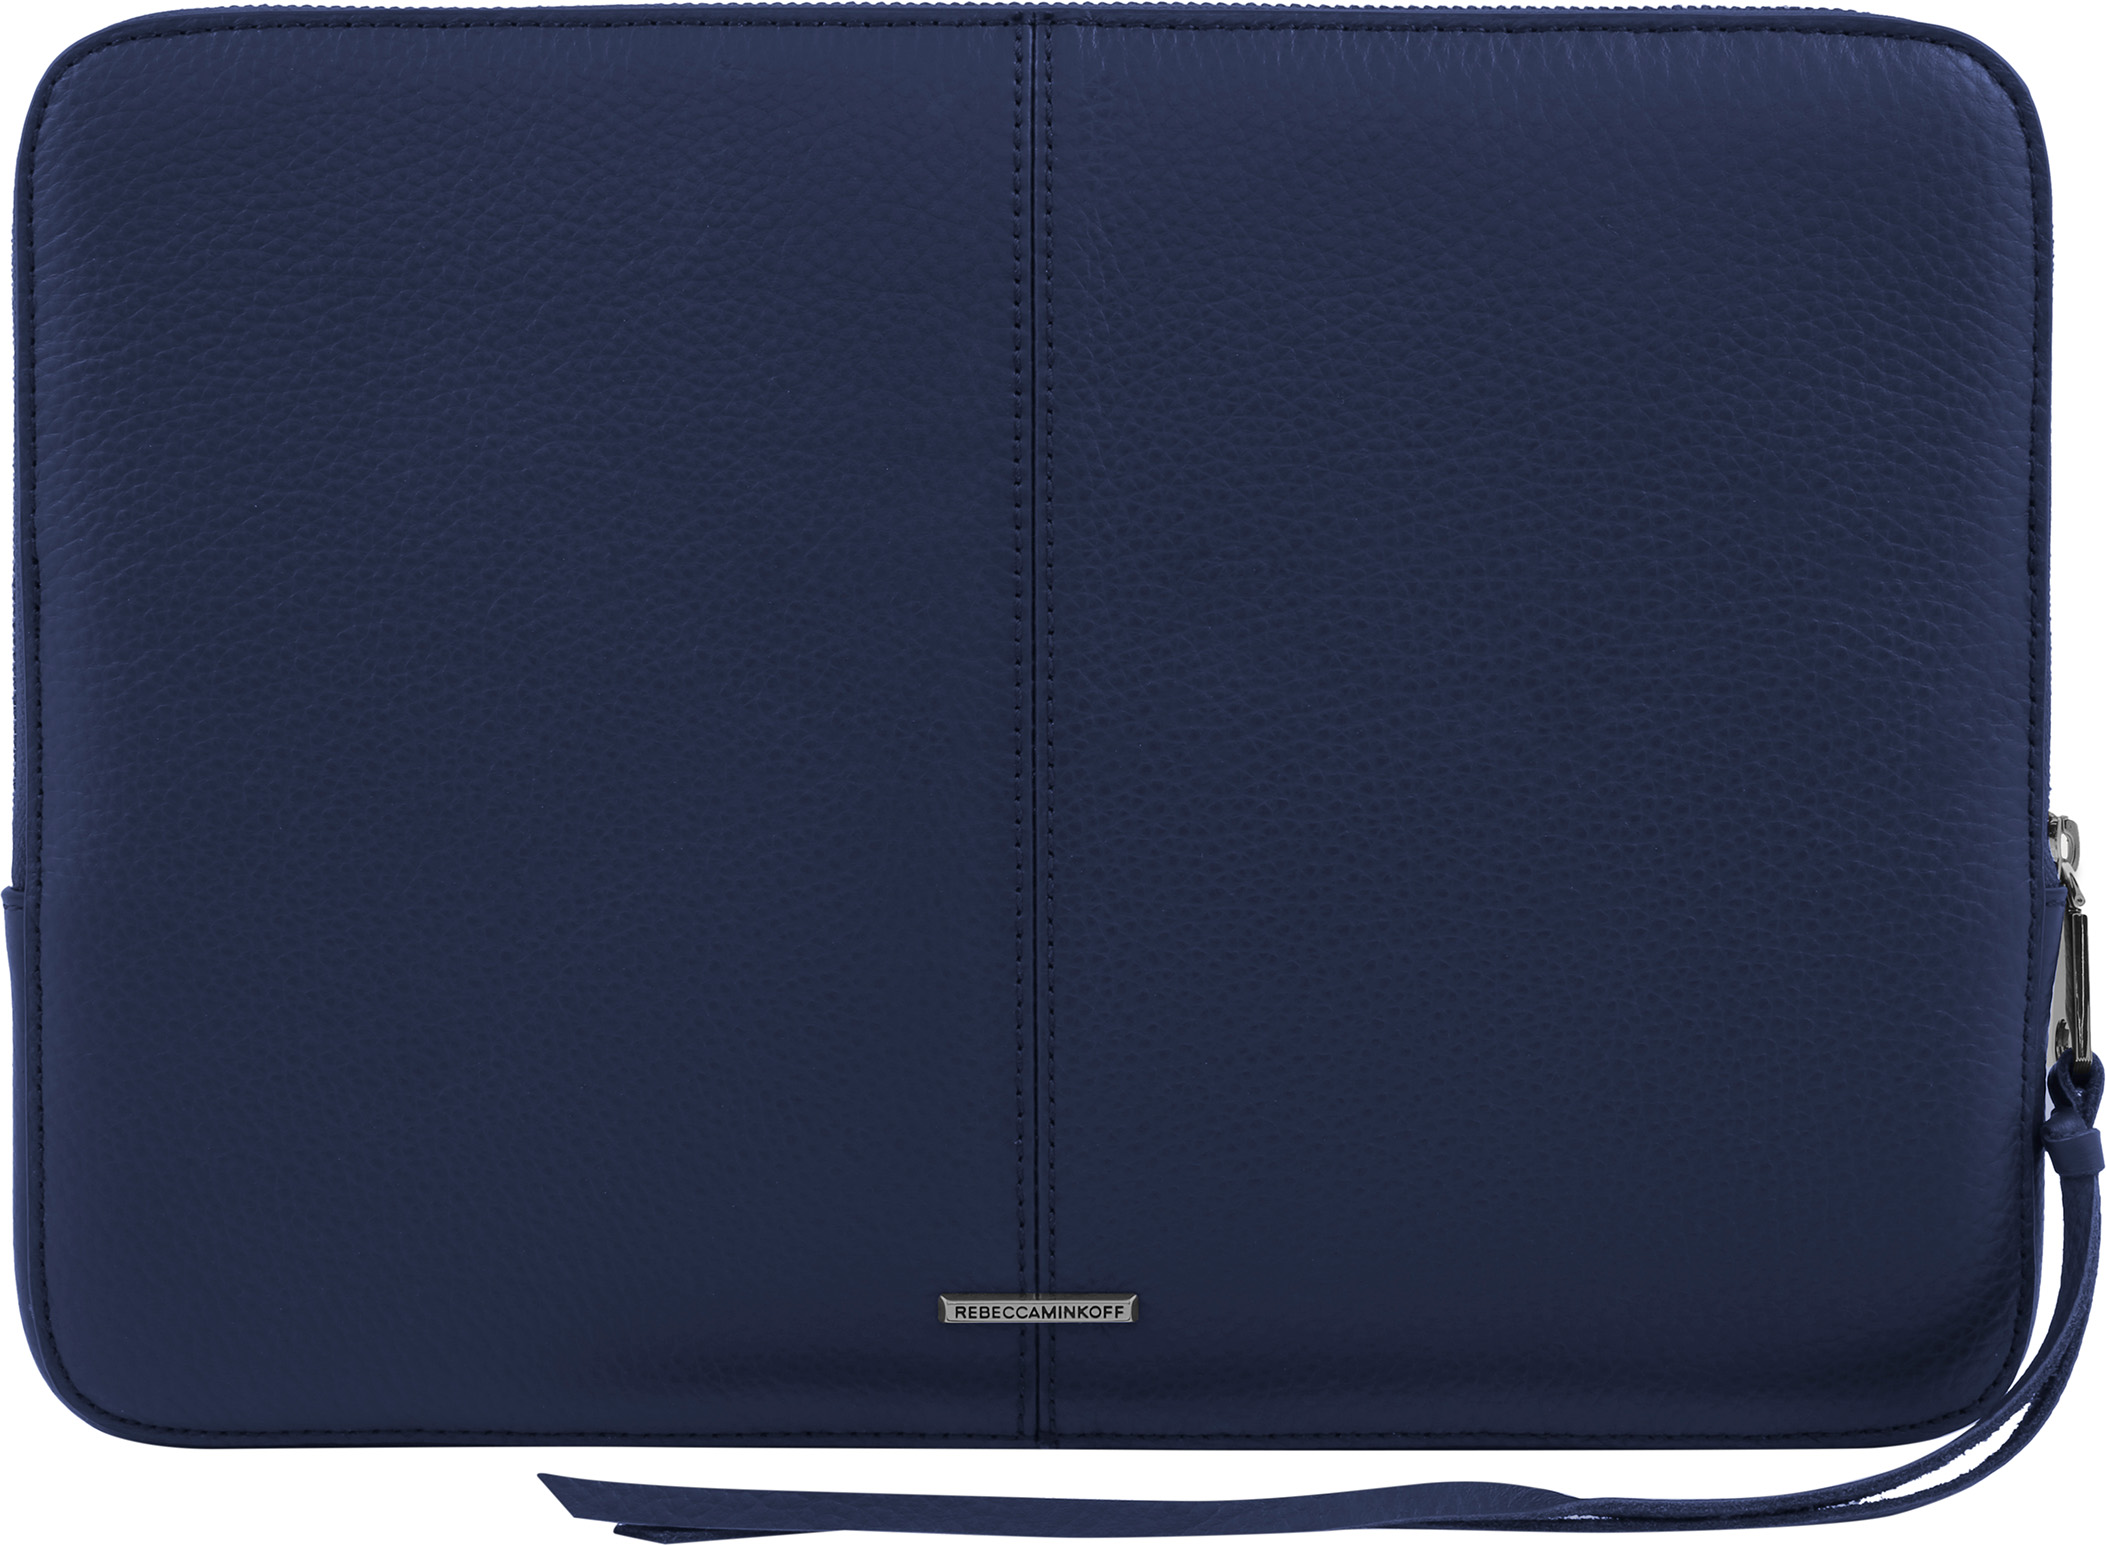 Incipio Rebecca Minkoff's Moto Sleeve Surface Pro (Eclipse)